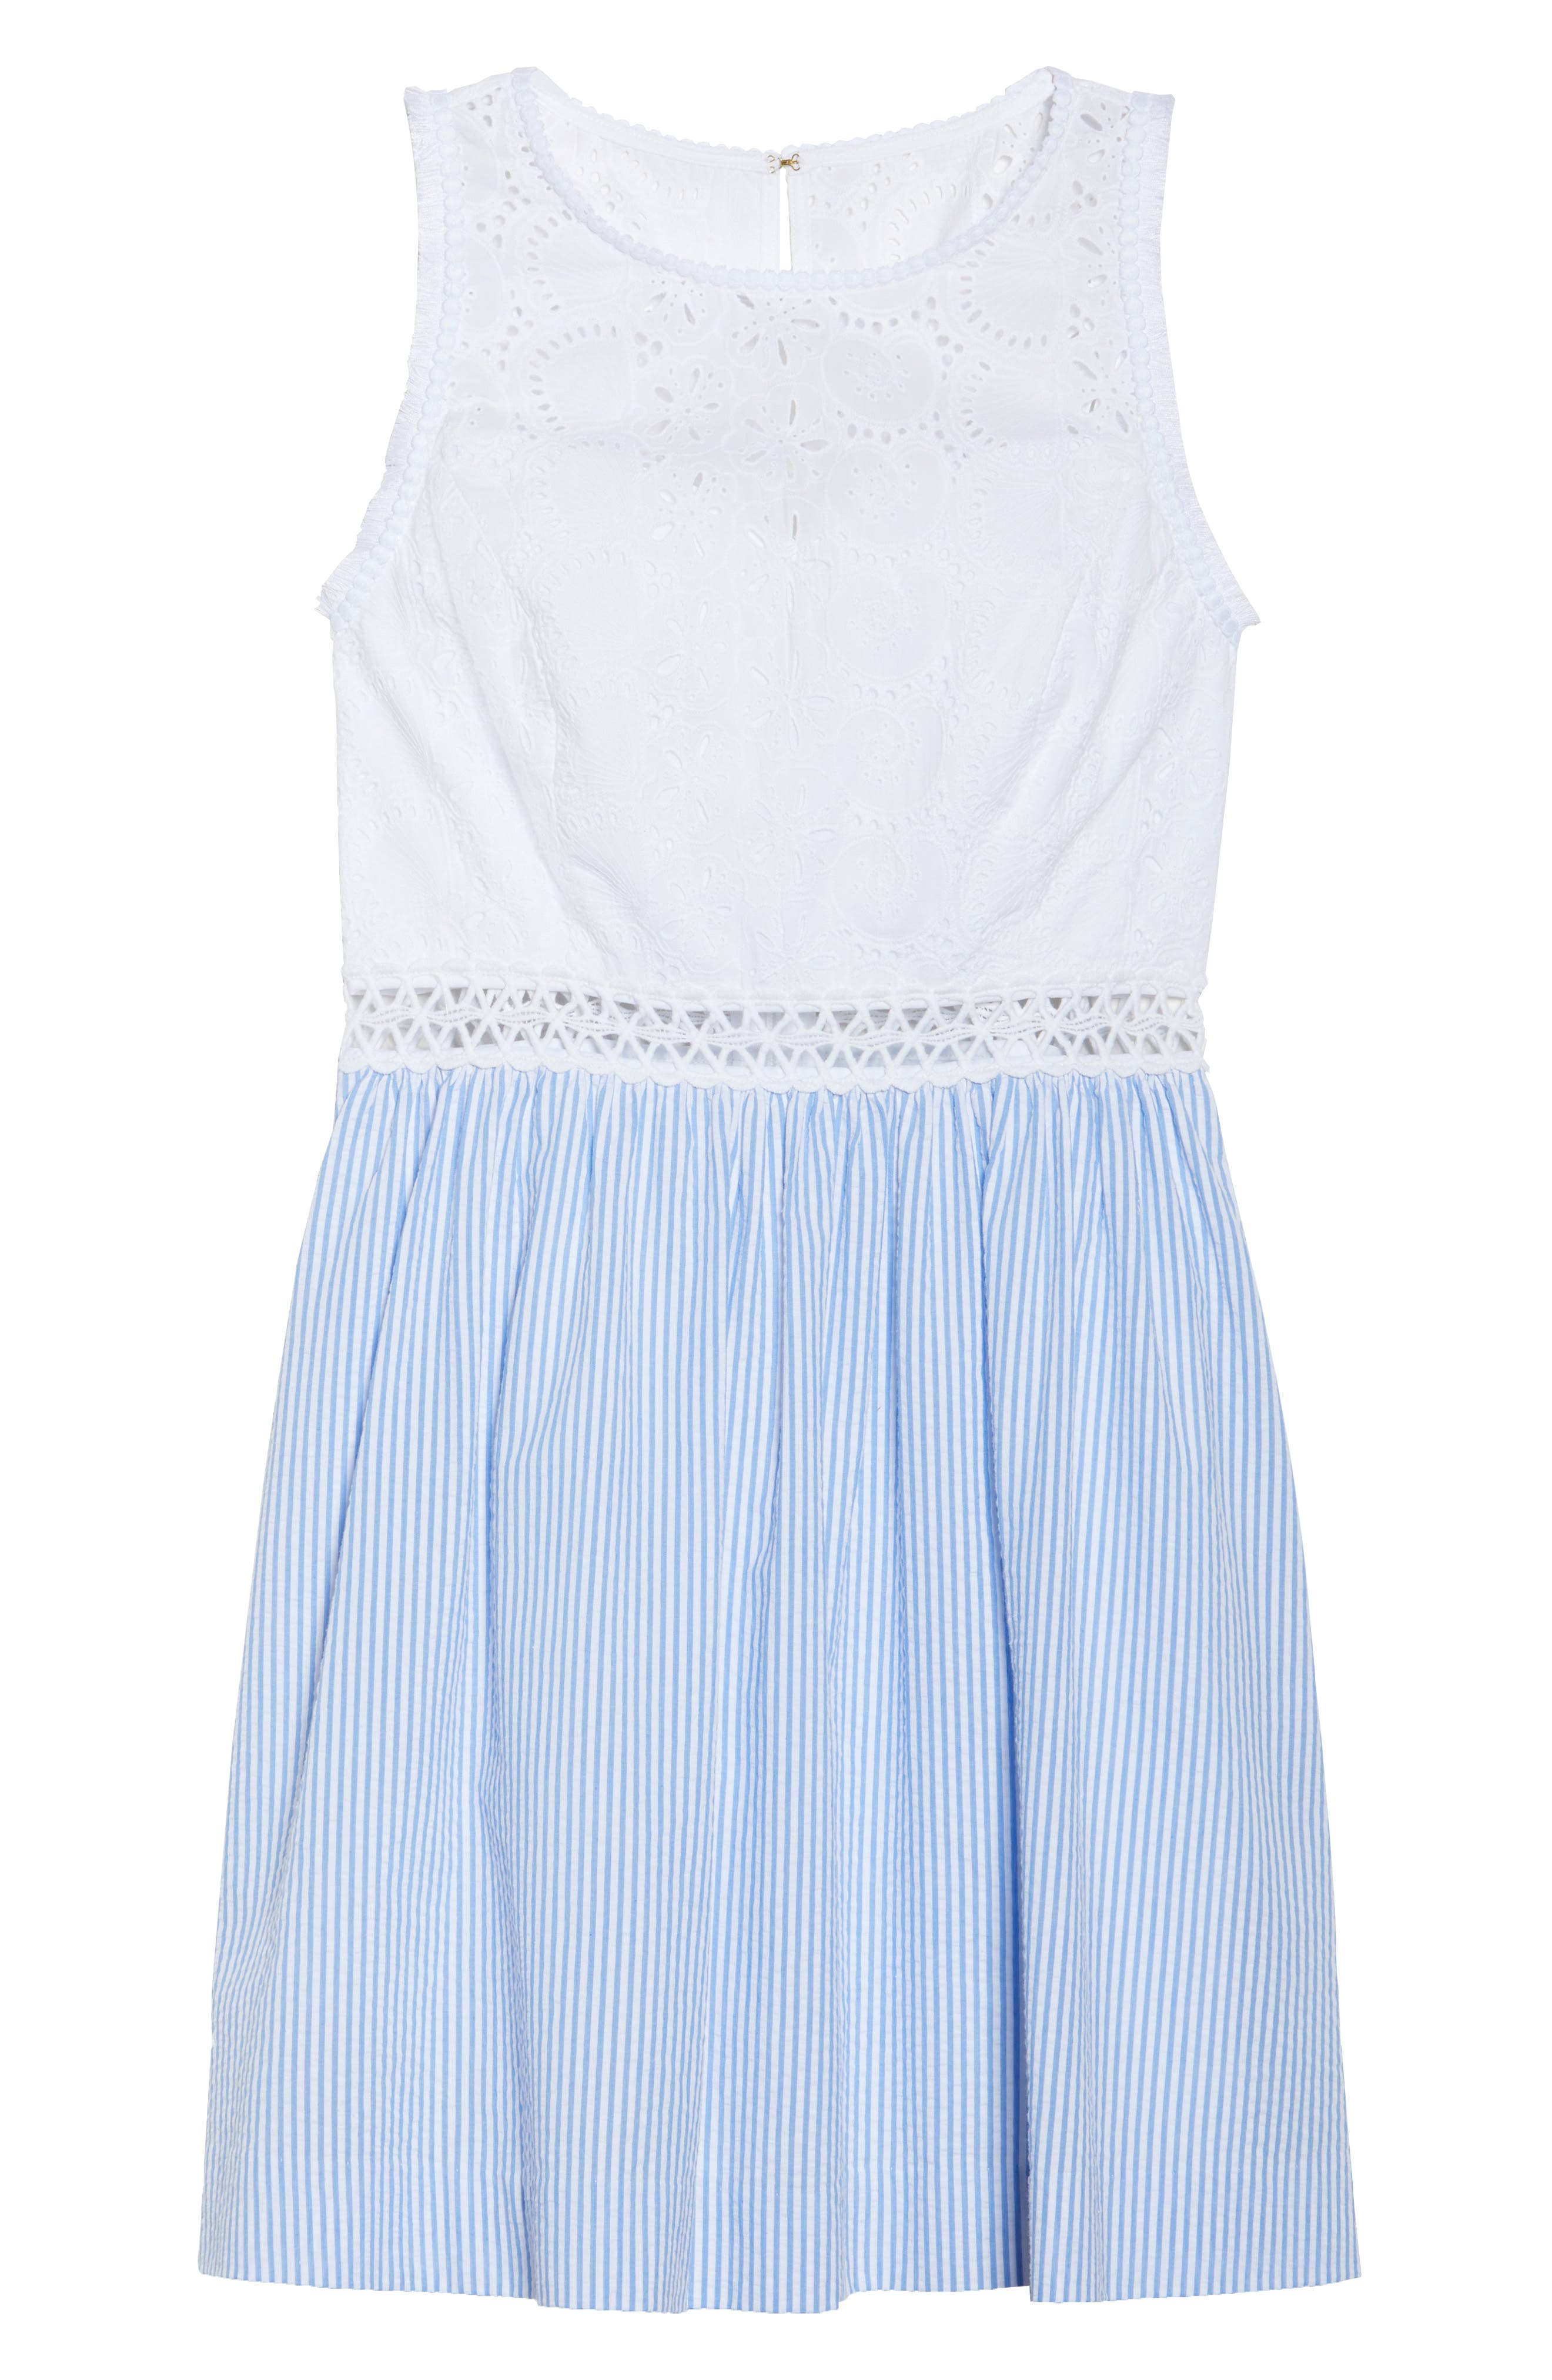 Lilly Pullitzer<sup>®</sup> Alivia Eyelet & Seersucker Fit & Flare Dress,                             Alternate thumbnail 6, color,                             BENNET BLUE YARD DYED STRIPE